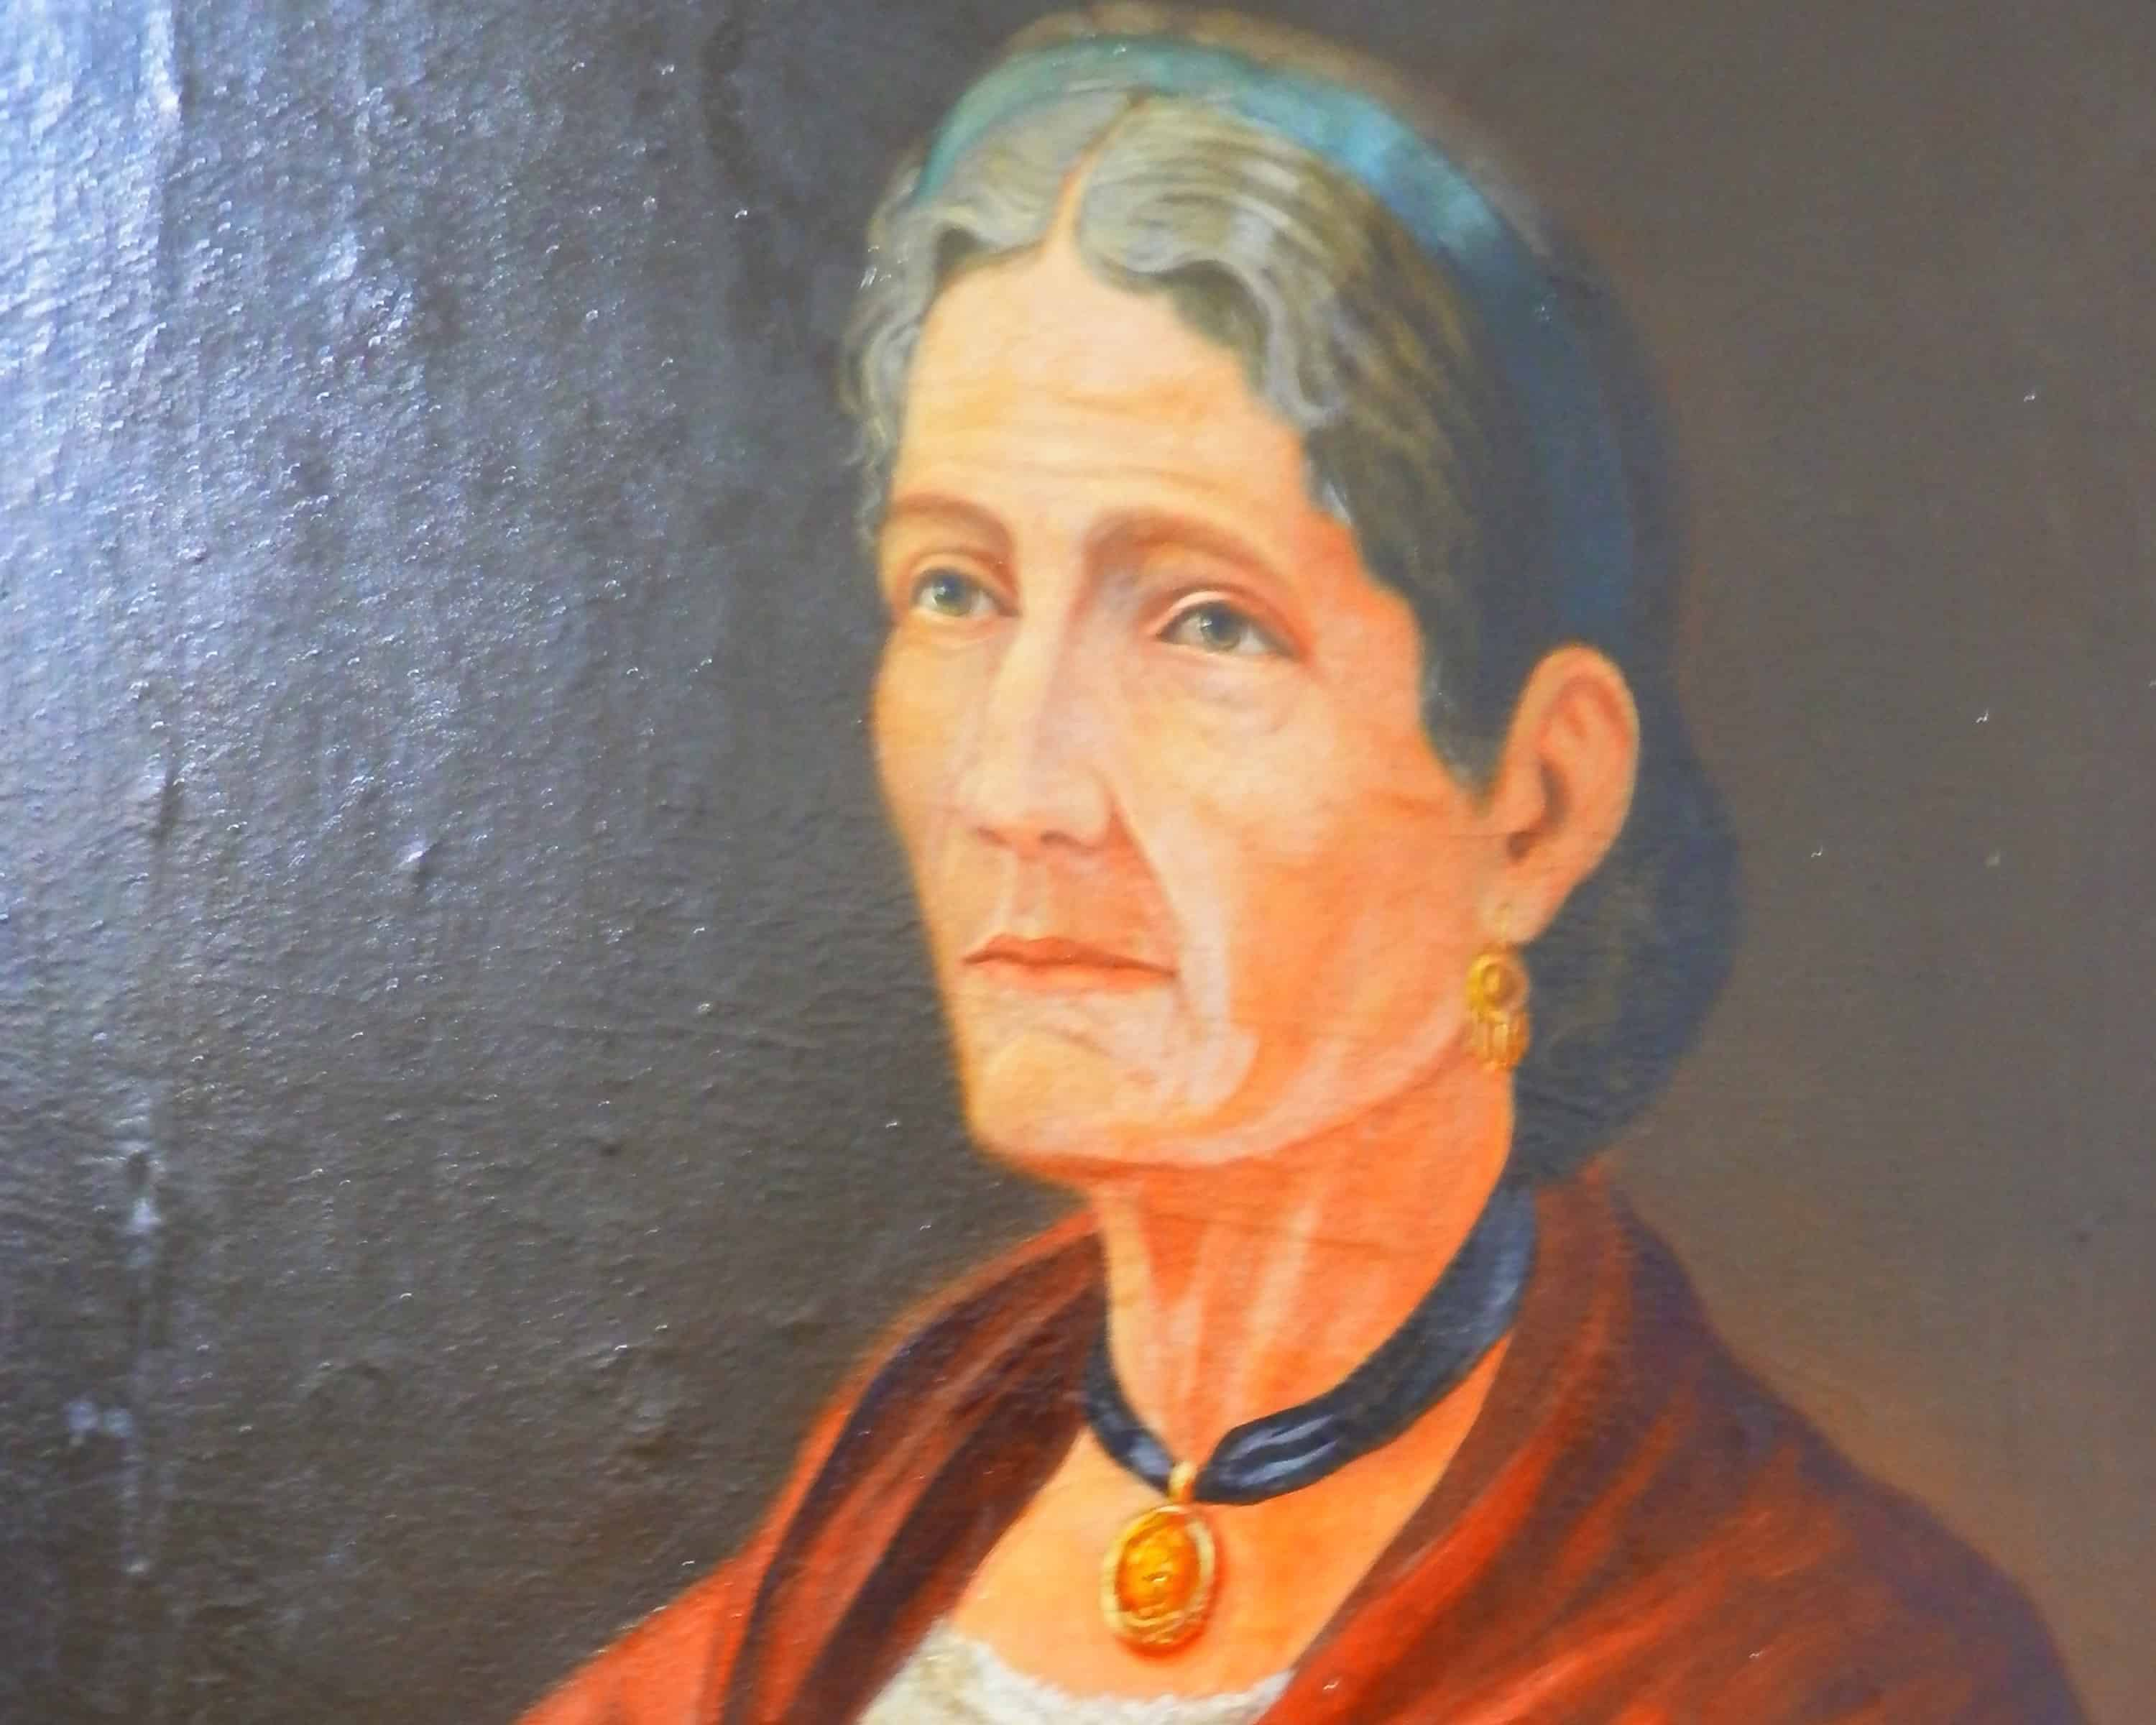 A portrait of Francisca 'Pancha' Carrasco. Born in 1816 in Taras de Cartago, she broke the rules for girls by learning to read, write and ride a horse. In public demonstrations against dictator Francisco Morazán in the 1840s Pancha led a mounted female brigade through the streets urging the public to oust this intruder from Honduras.